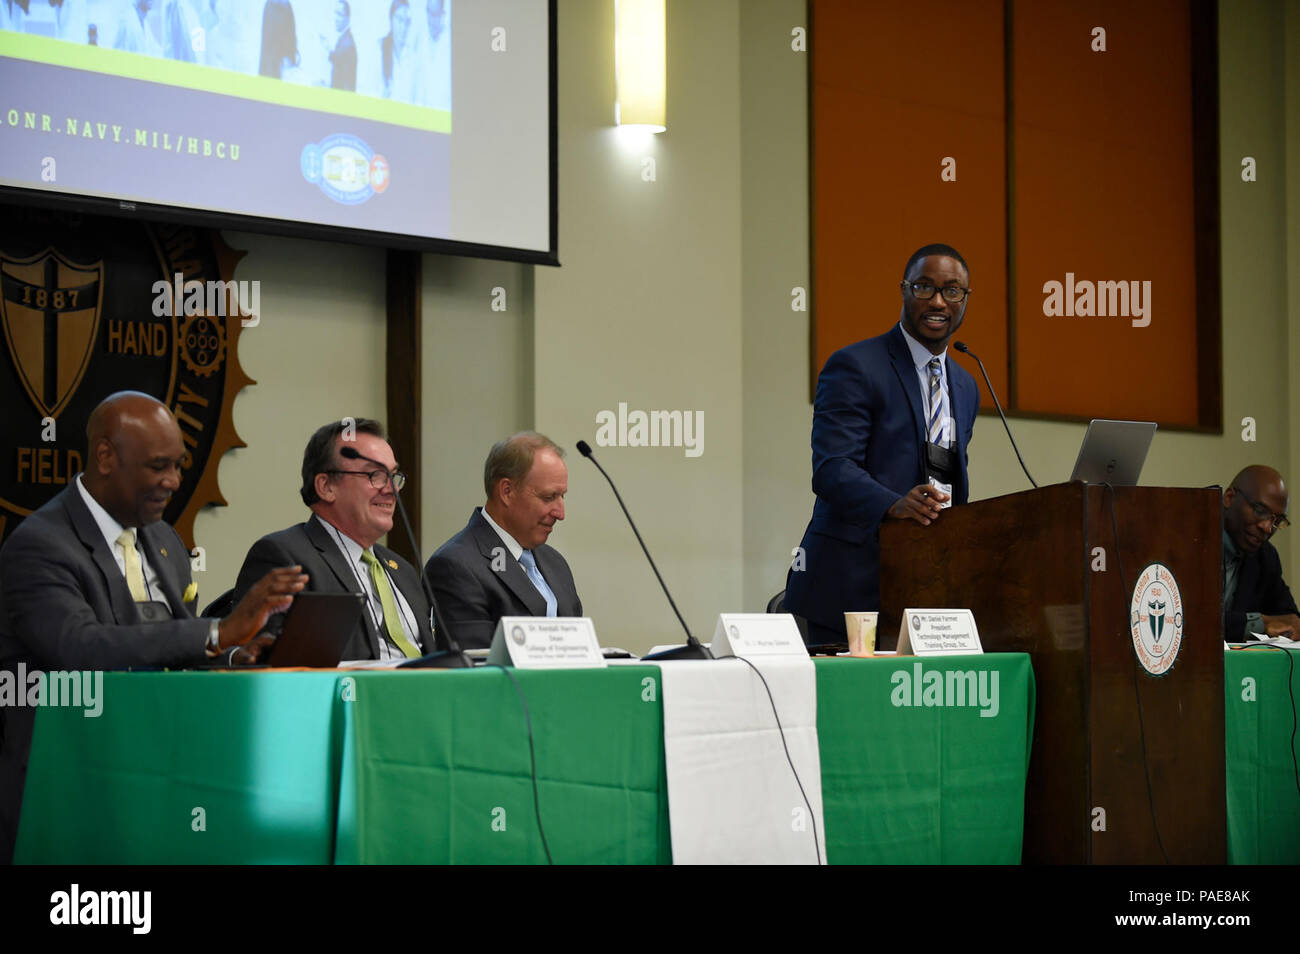 TALLAHASSEE, Fla. (Sep. 21, 2017) Dr. Demetrius Geddis, associate professor, Norfolk State University, participates in a panel discussion during the Department of Navy (DoN) Historically Black Colleges and Universities/Minority Institutions (HBCU/MI) Naval Opportunity Awareness Workshop at Florida A&M University. The DoN HBCU/MI program is designed to increase the participation of HBCU/MIs in the Navy's research, development, test and evaluation (RDT&E) programs and activities. - Stock Image